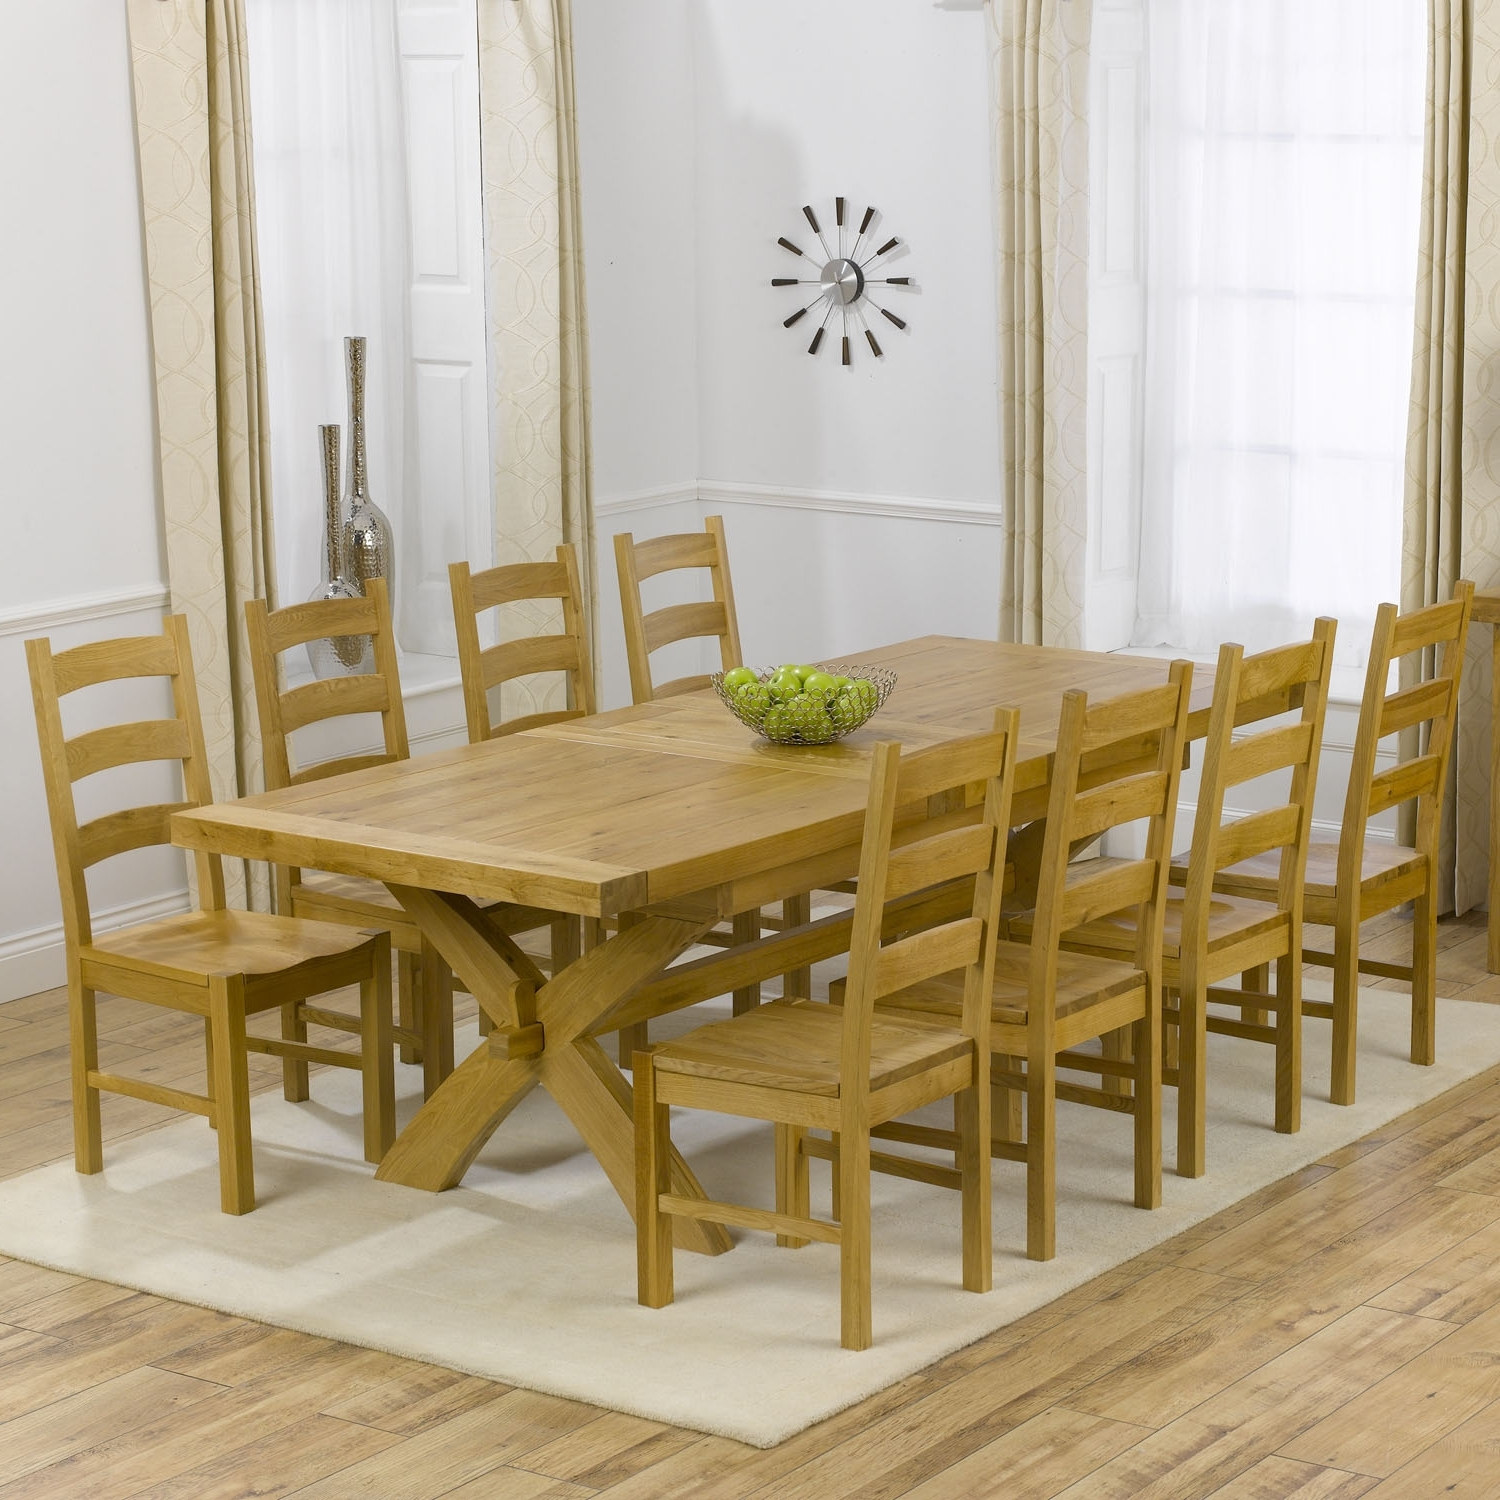 Well Liked Eight Seater Dining Tables And Chairs Inside Dining Tables (View 16 of 25)